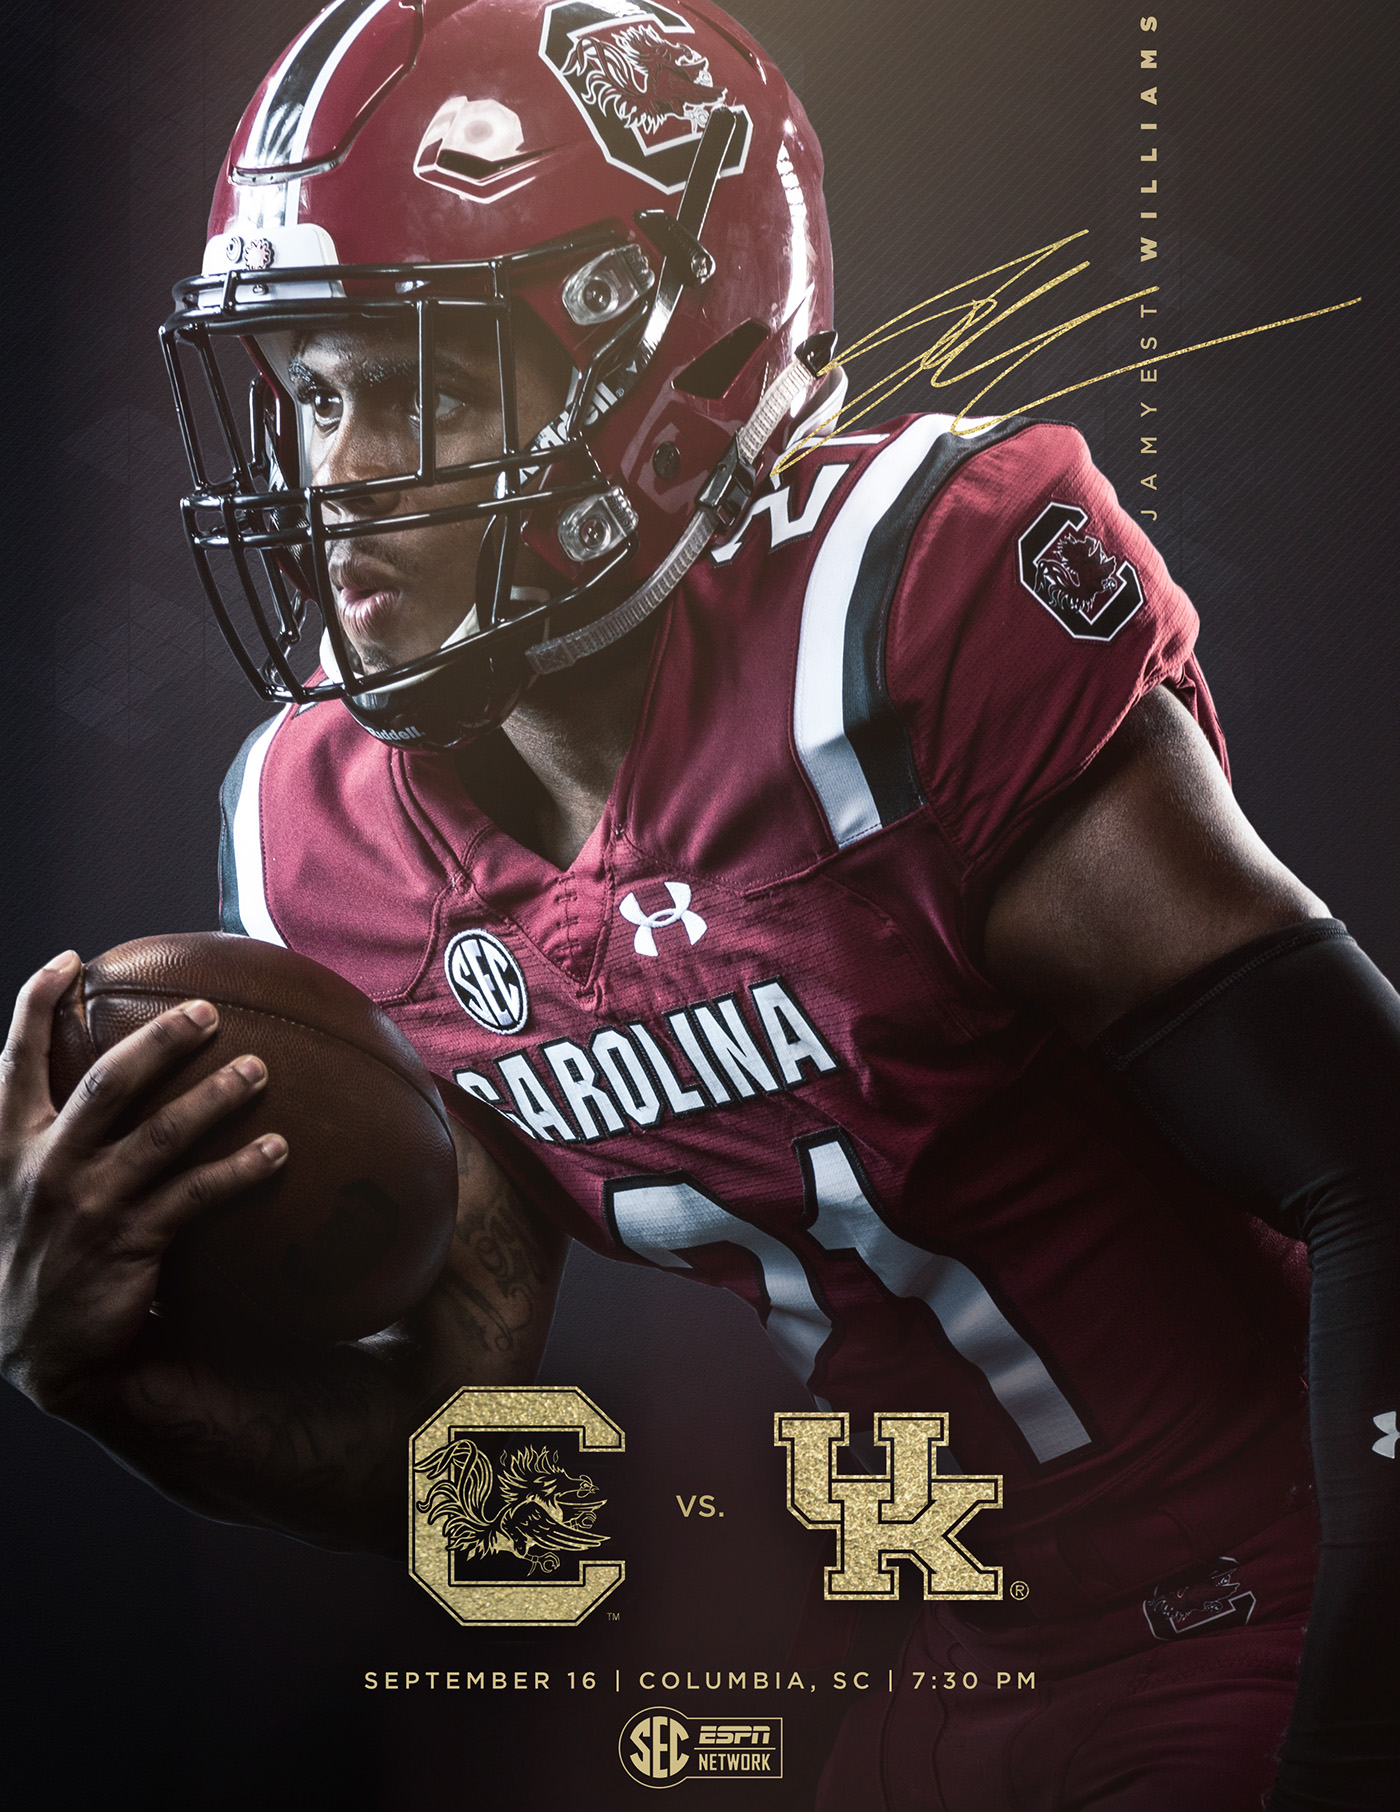 2017 Gamecock Football Game Watch Mailers on Behance